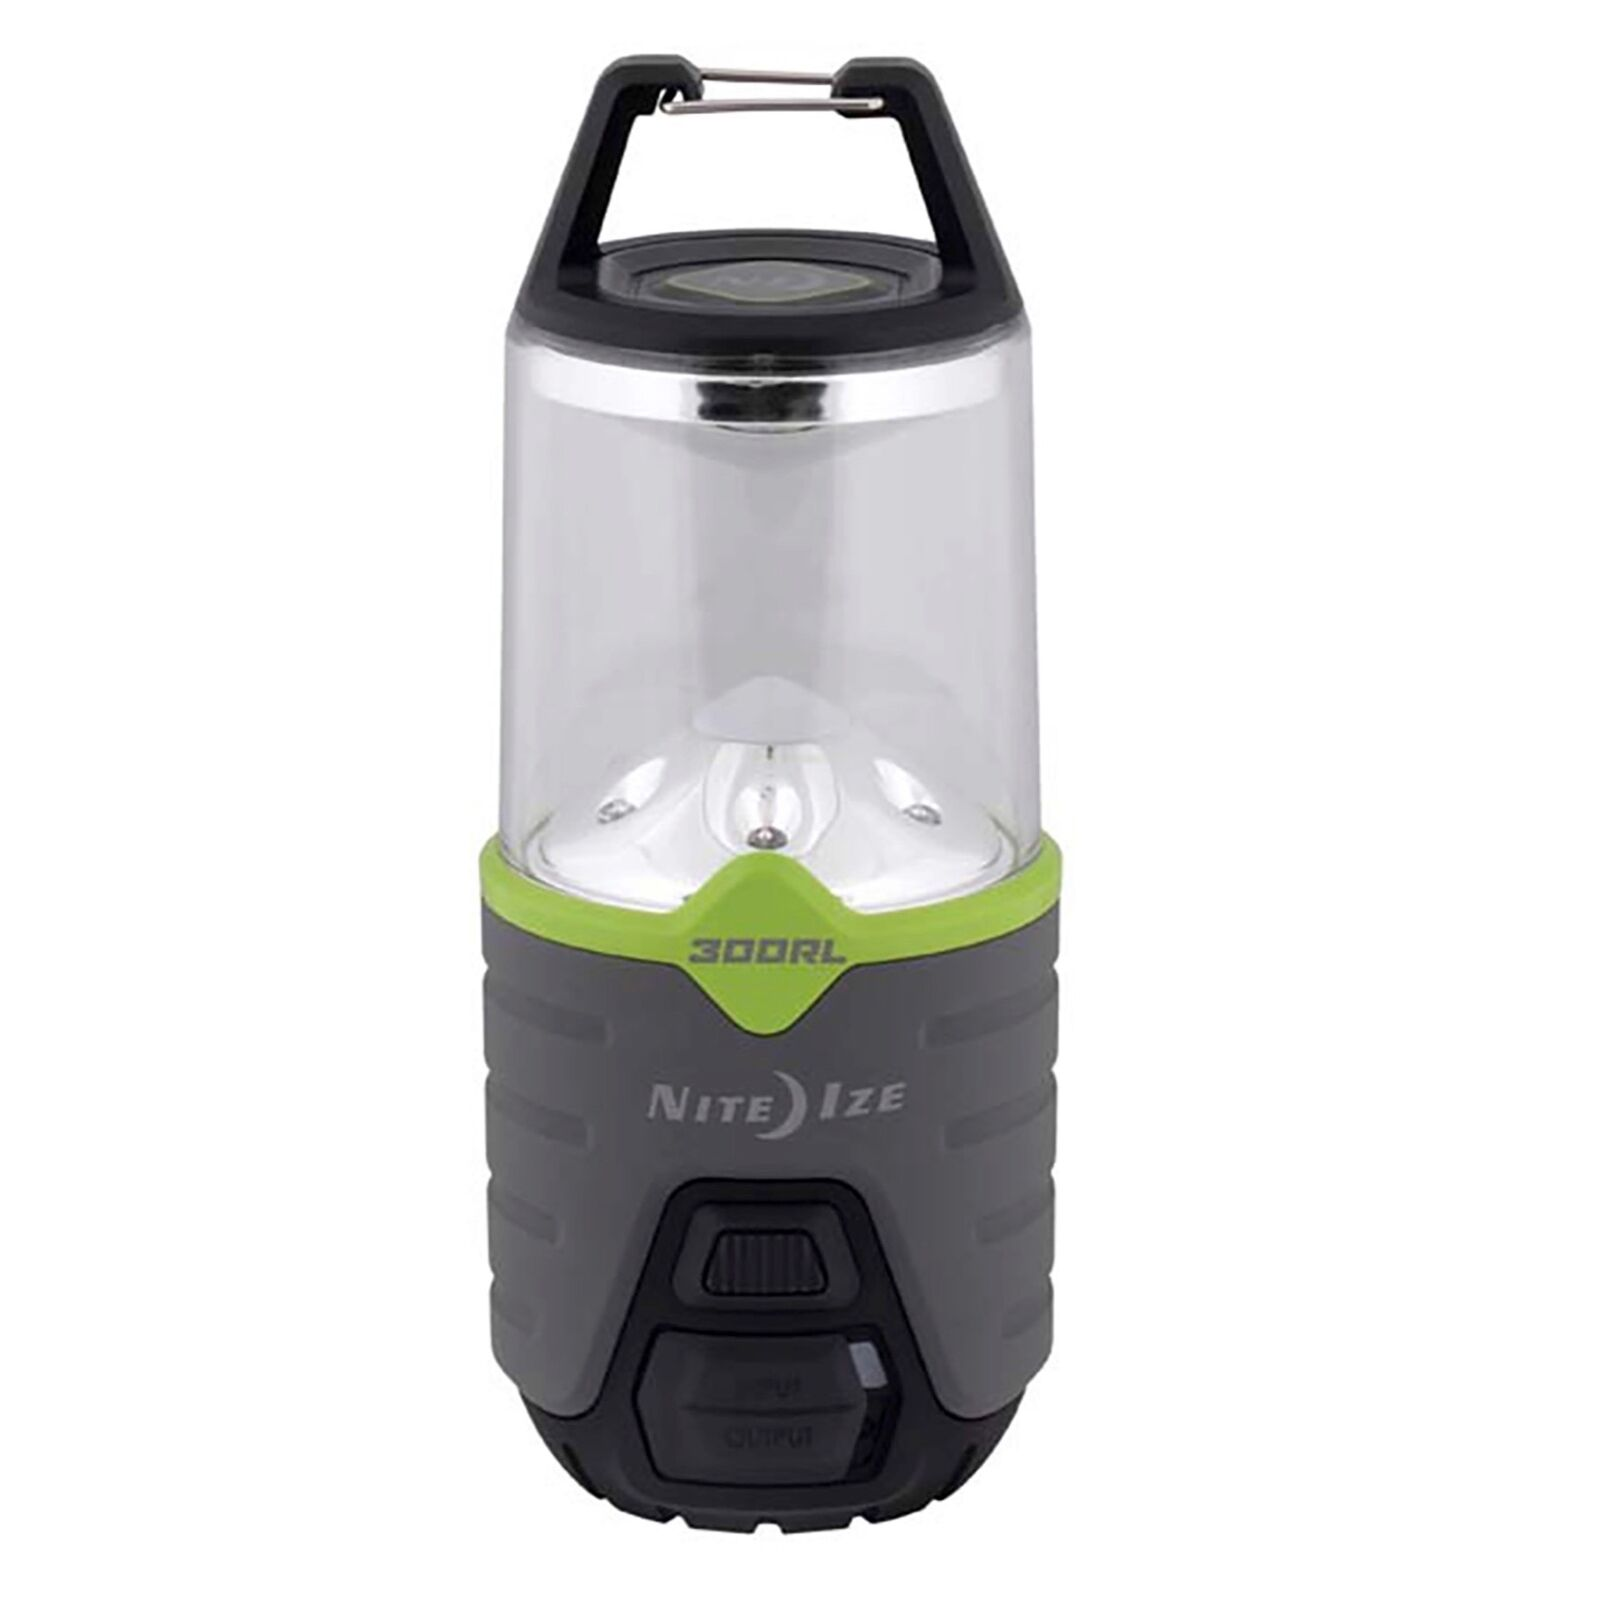 Nite Ize Radiant Rechargeable  Lantern 300 Max Lumens w USB Port Light (OPEN BOX)  save on clearance